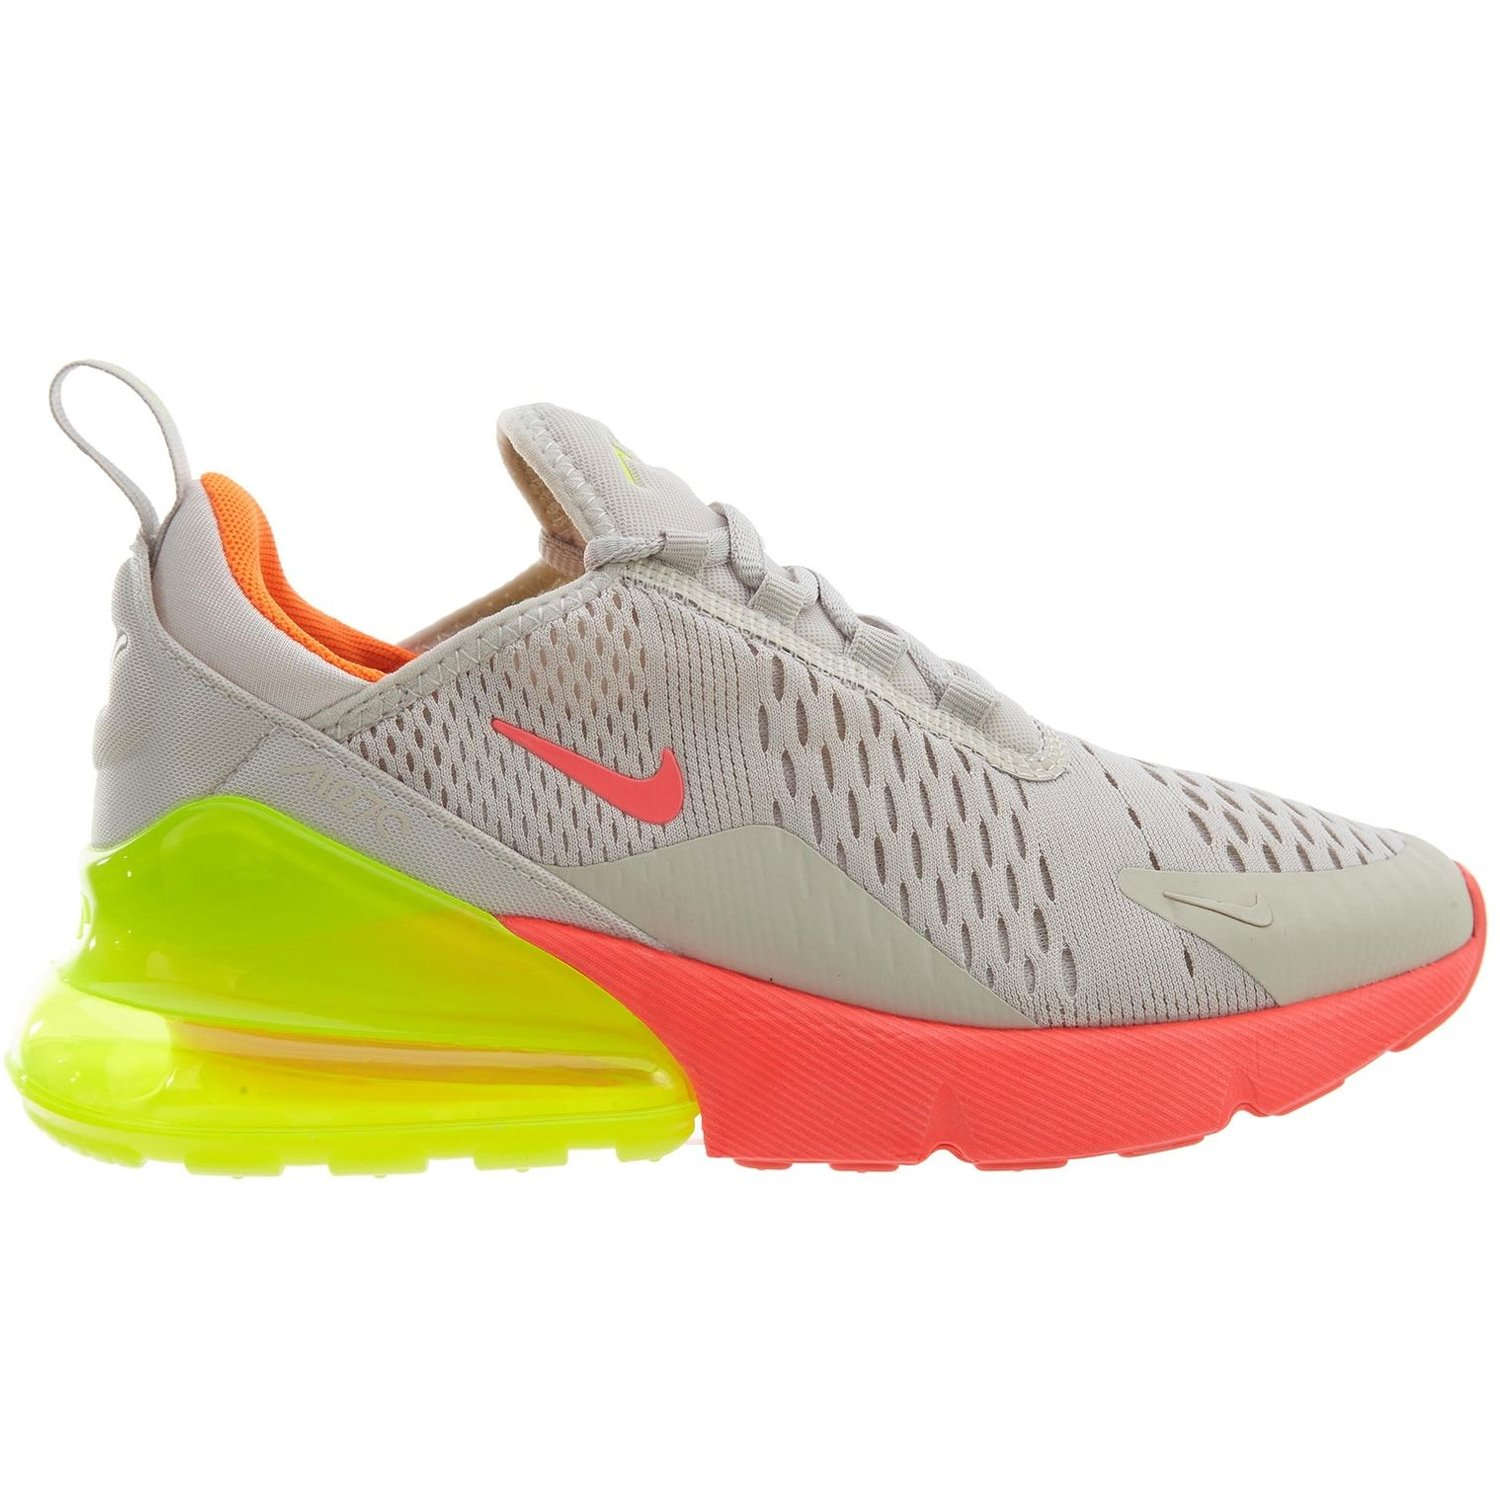 hot sale online 457a0 6e8d3 Amazon.com | Nike Air Max 270